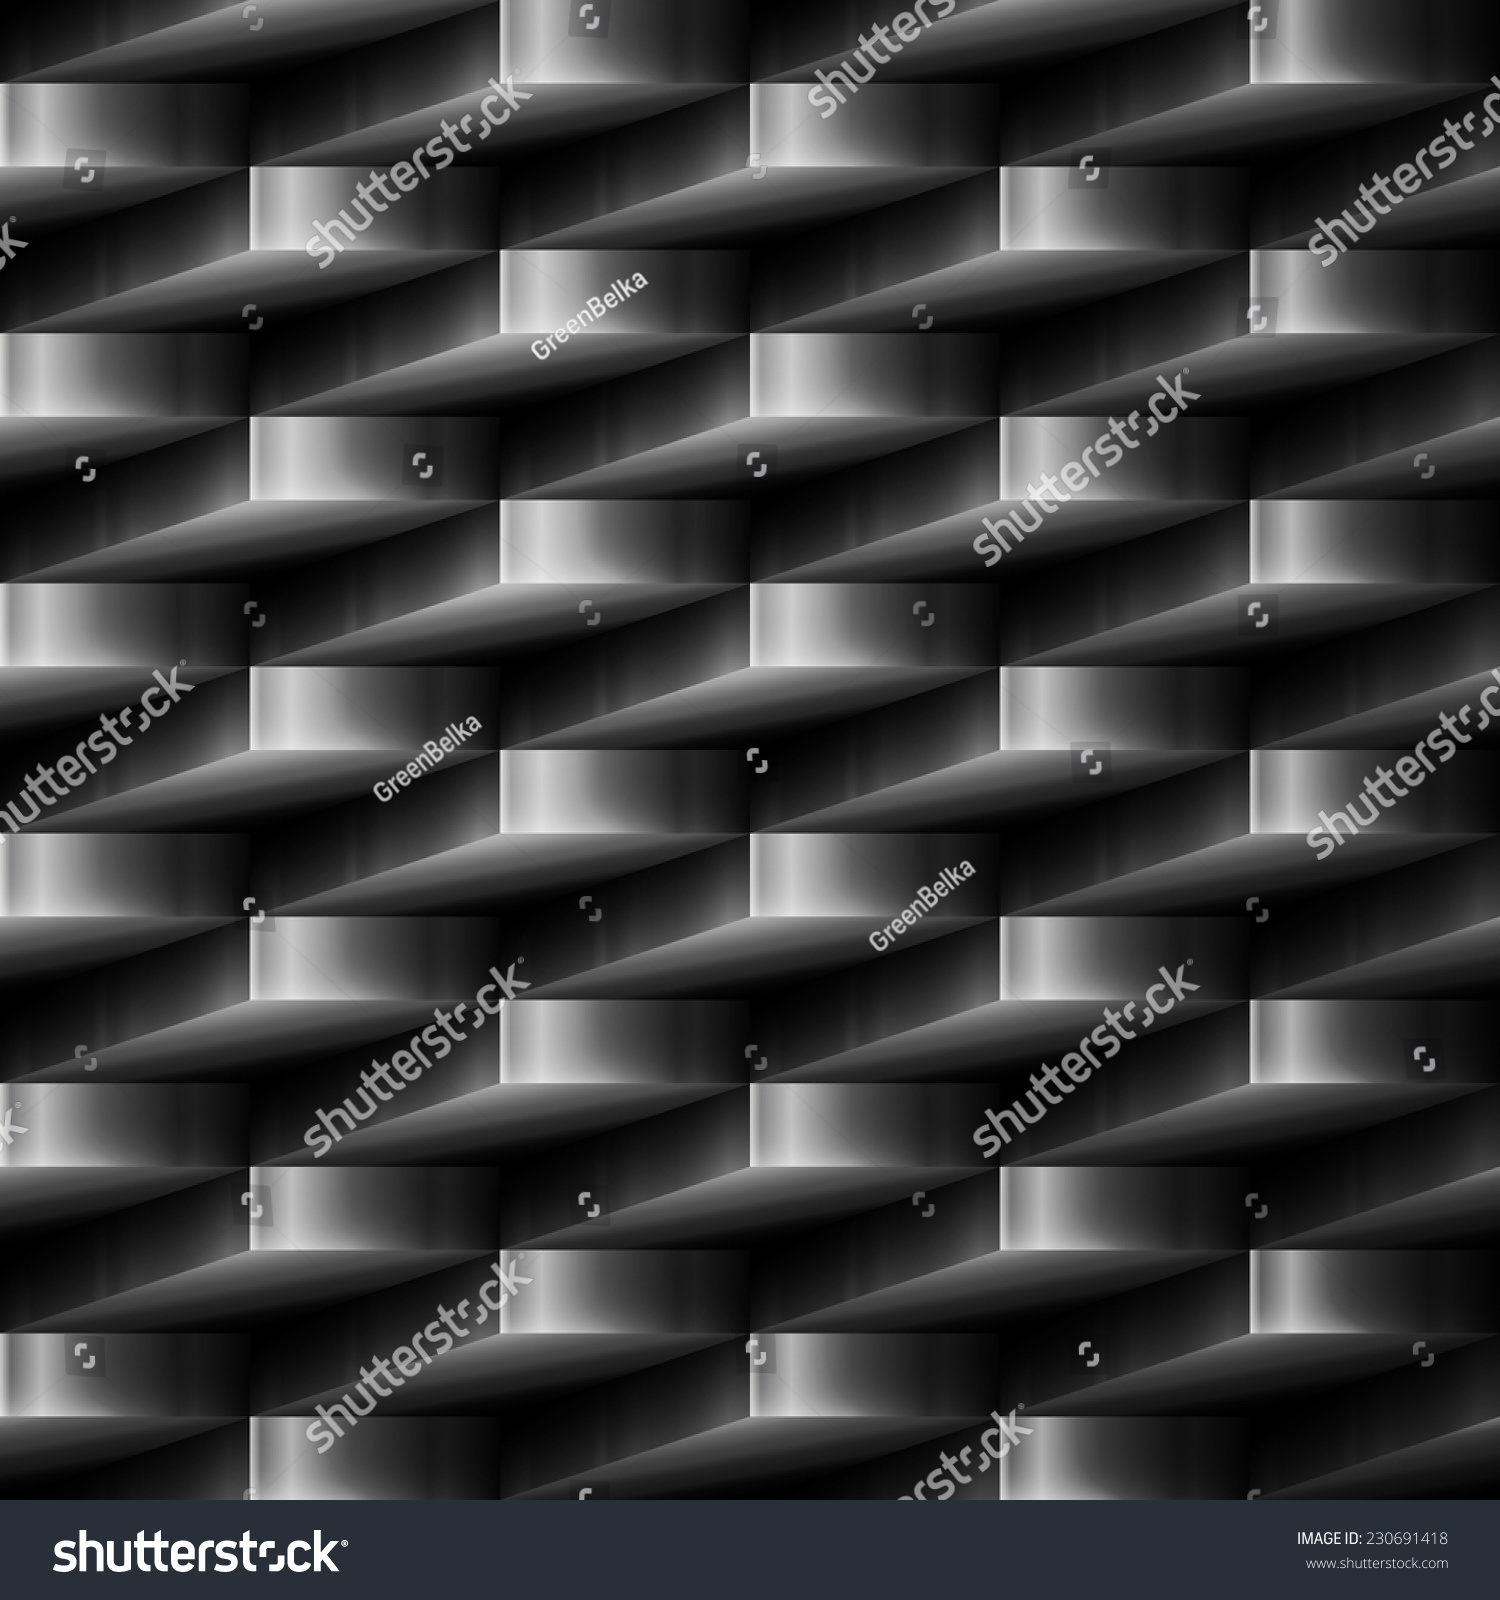 Marvelous Vector Design Element. Metal Abstract Seamless Background